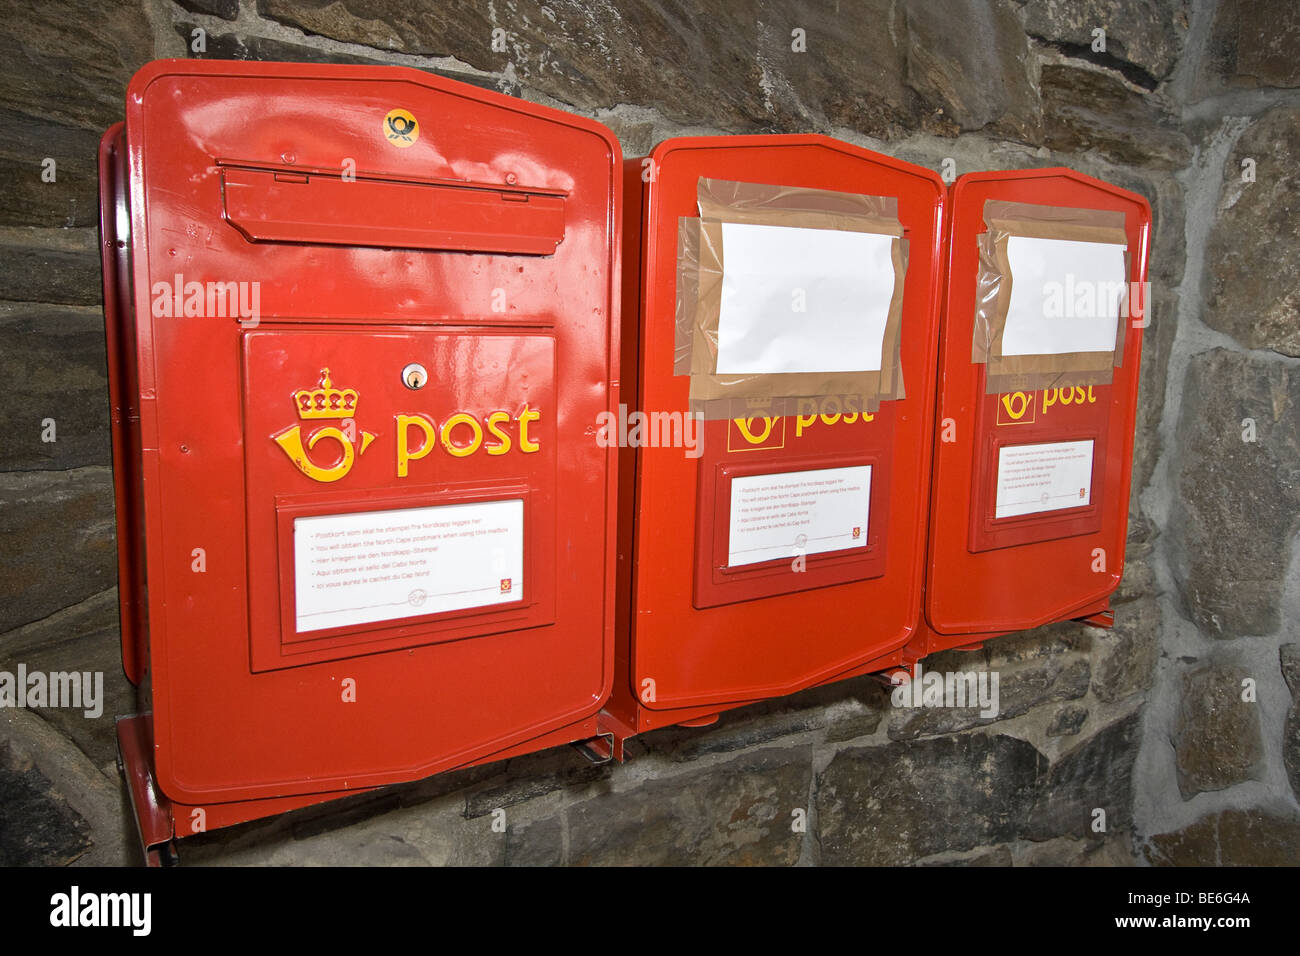 Northernmost postal boxes in Europe, located at the visitor center at North Cape, Europe's northernmost point. - Stock Image